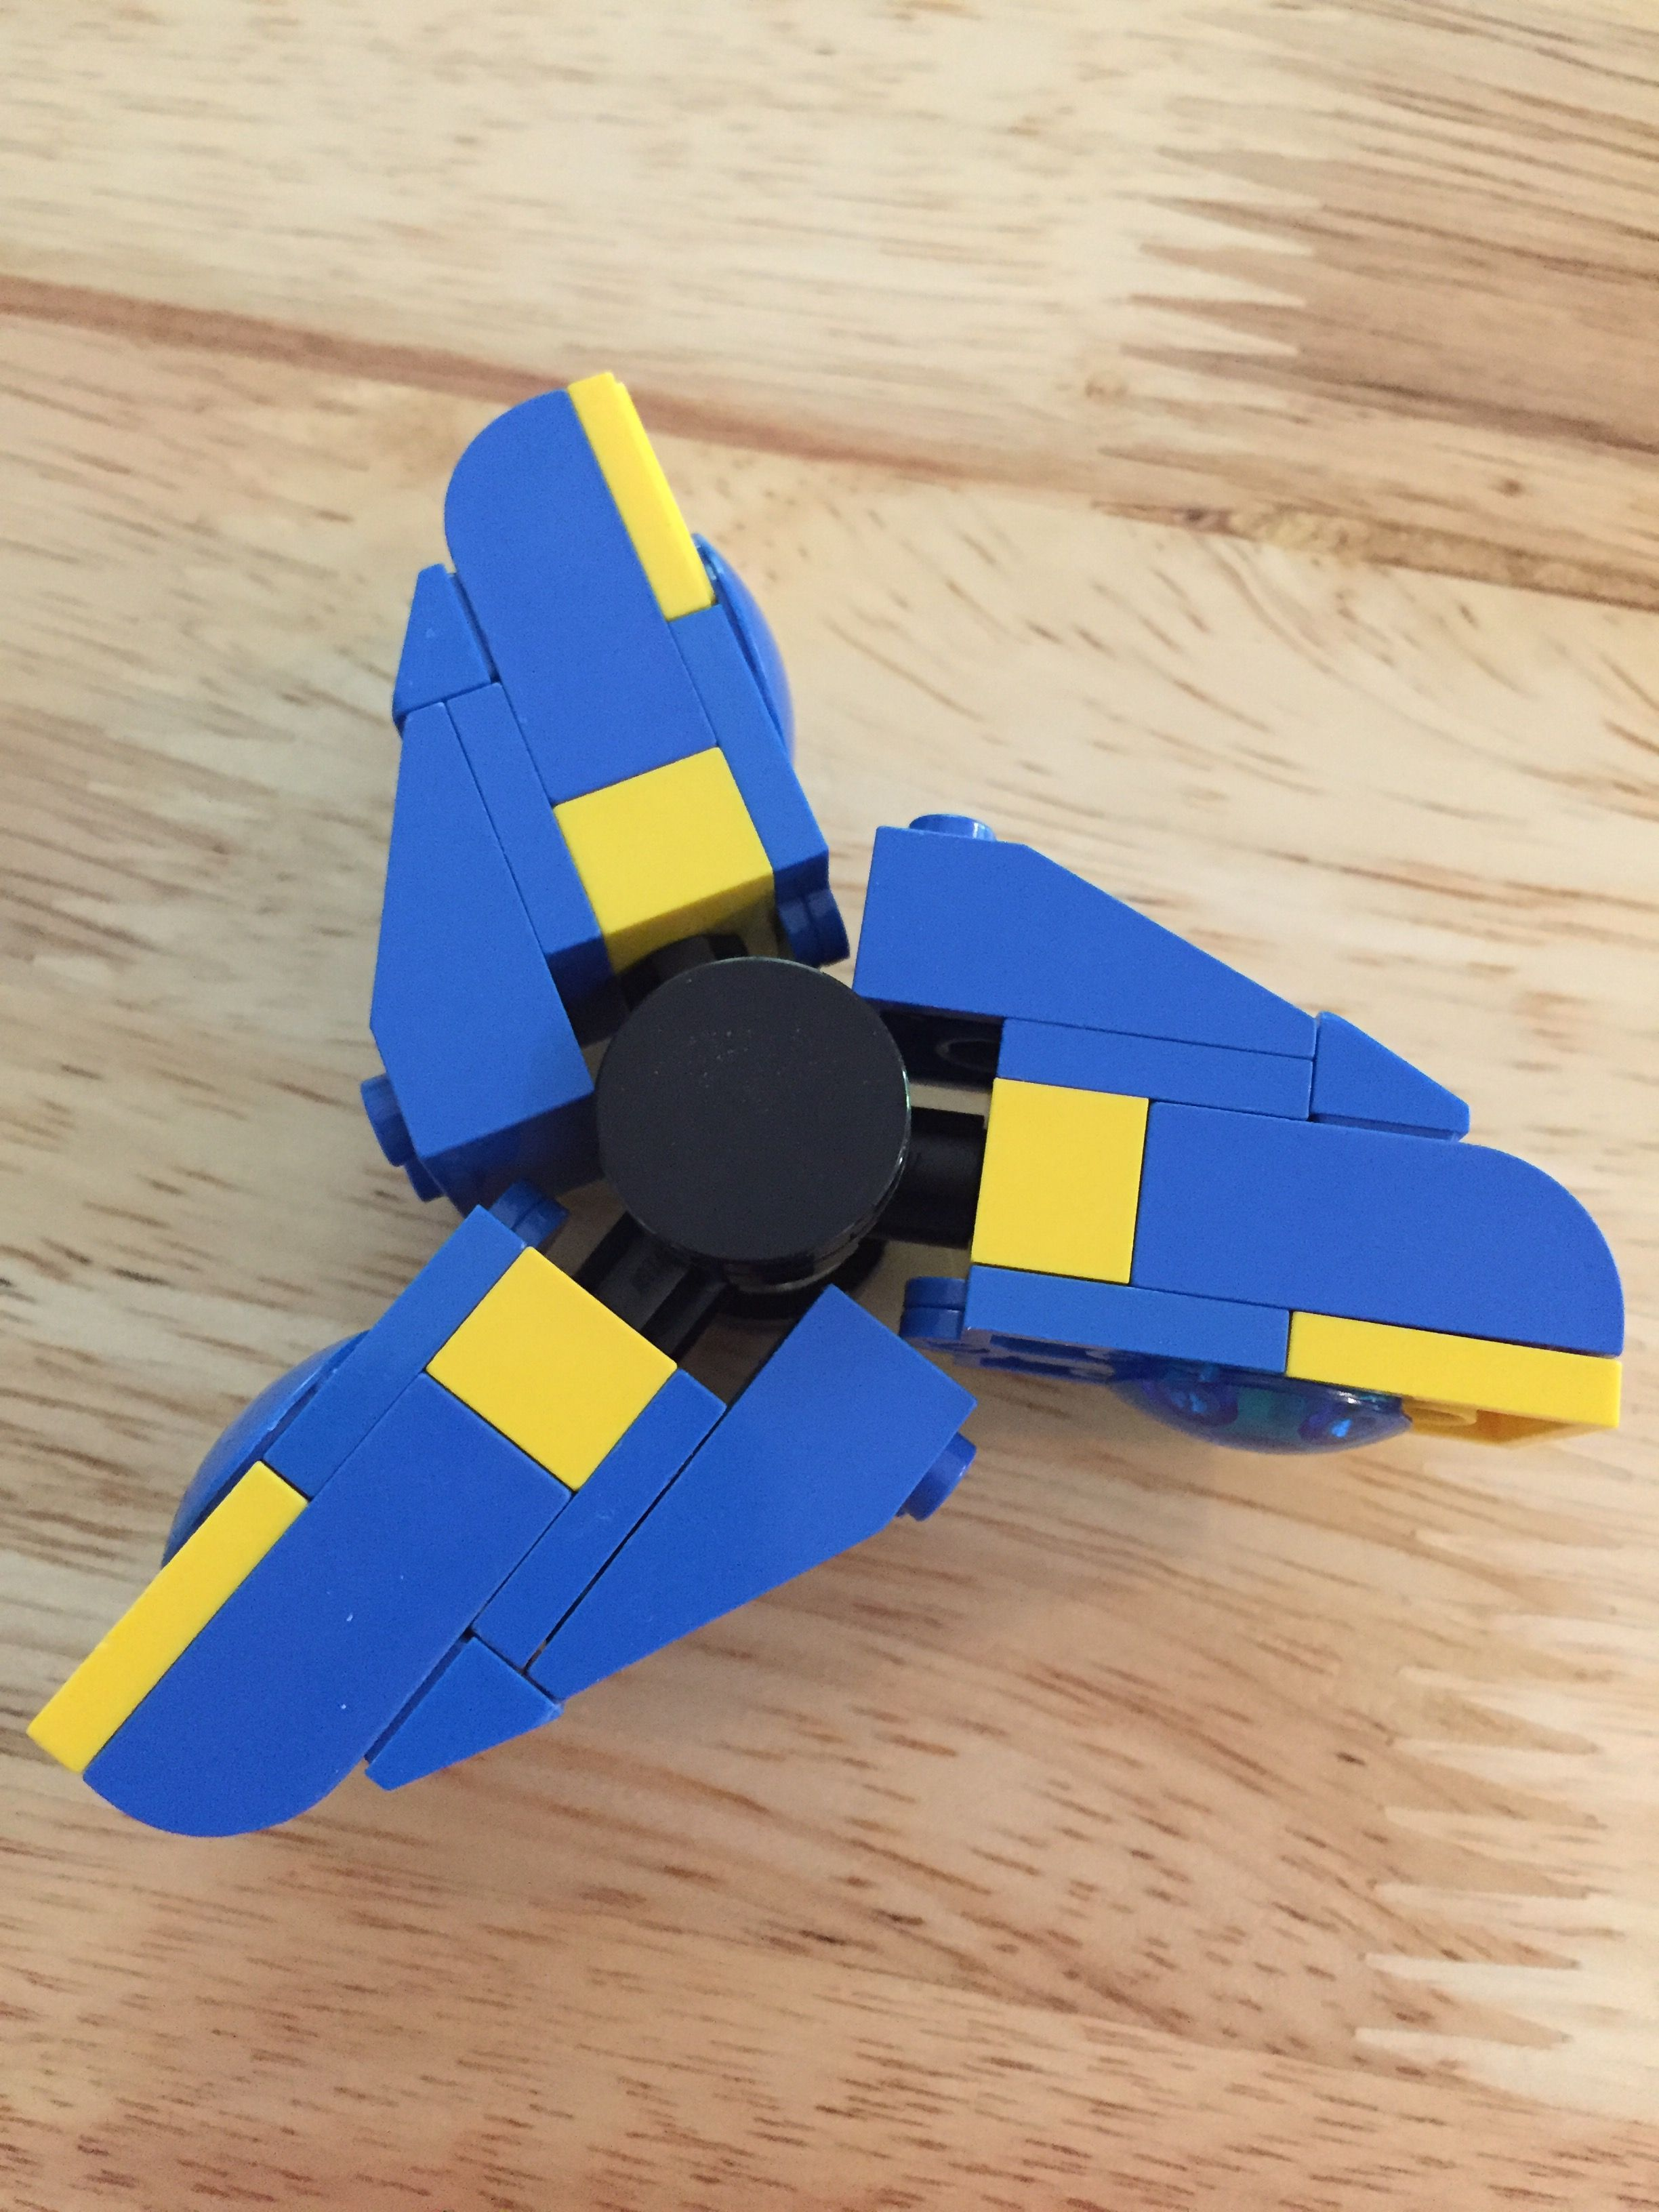 Lego Liberty Star Fidget Spinner